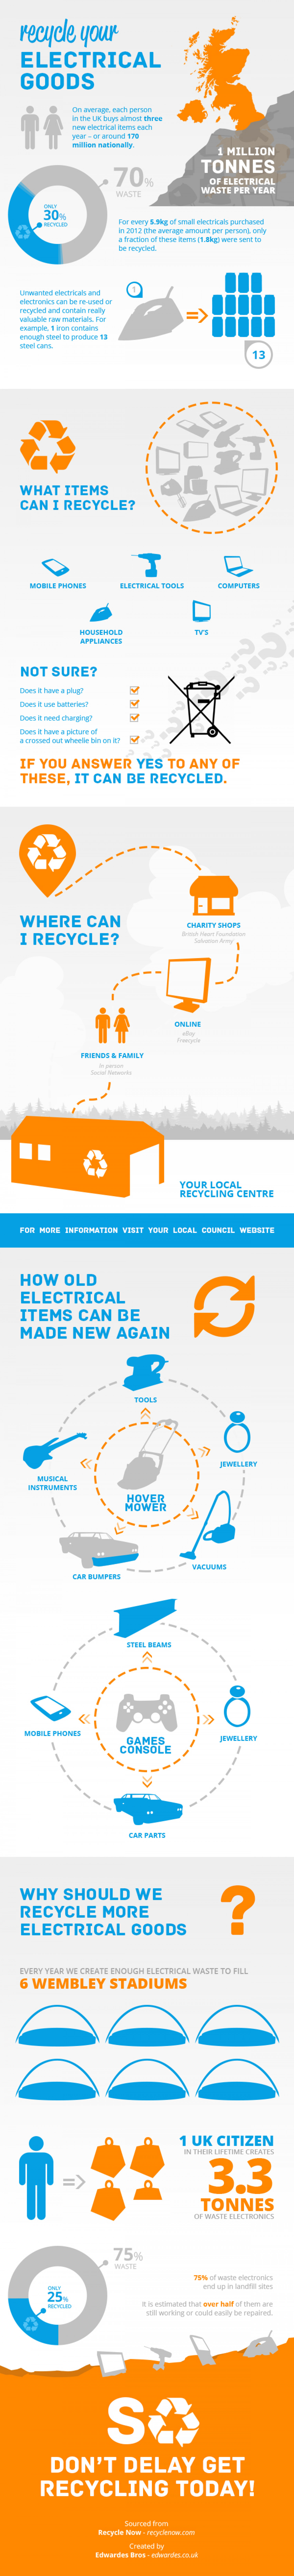 Don't Delay, Recycle Your Electrical Goods Today! Infographic